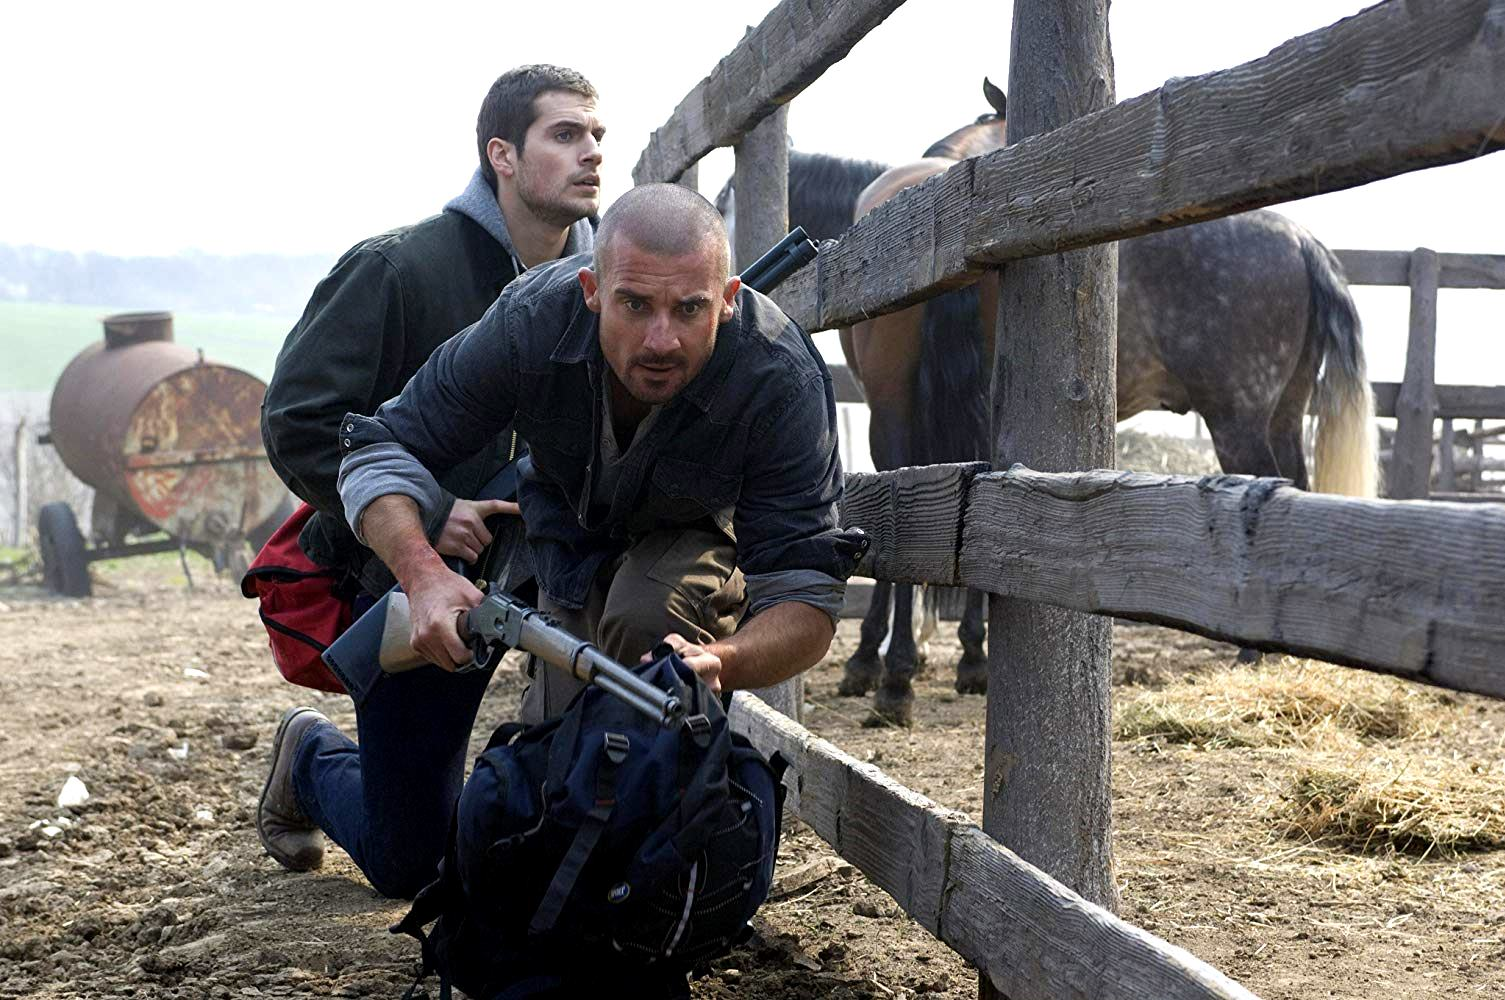 Brothers Henry Cavill and Dominic Purcell invade the farm at in Town Creek (2009)